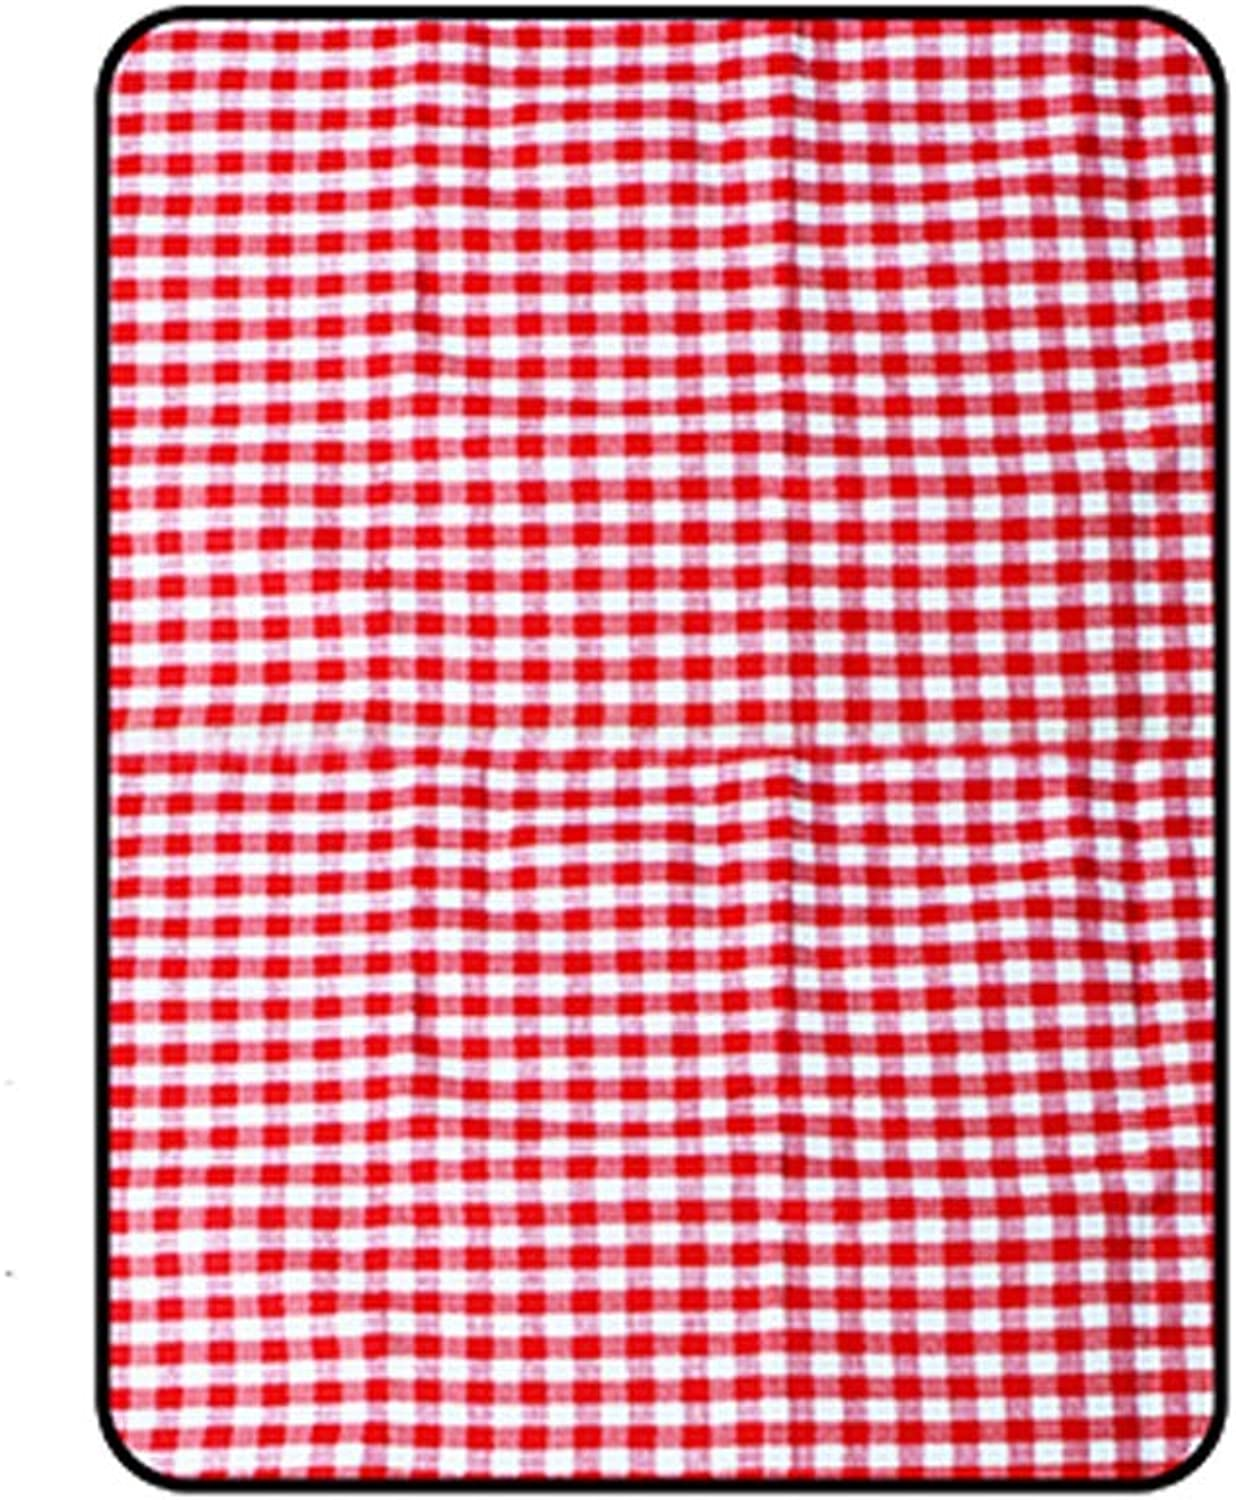 YZOOL Thicken Extra Large Moisture-Proof Mat Outdoor Picnic Mats Ins Wind Net Red Portable Spring Tour Park Light Folding Mats Can Be Portable Side Back Waterproof and Moisture-Proof